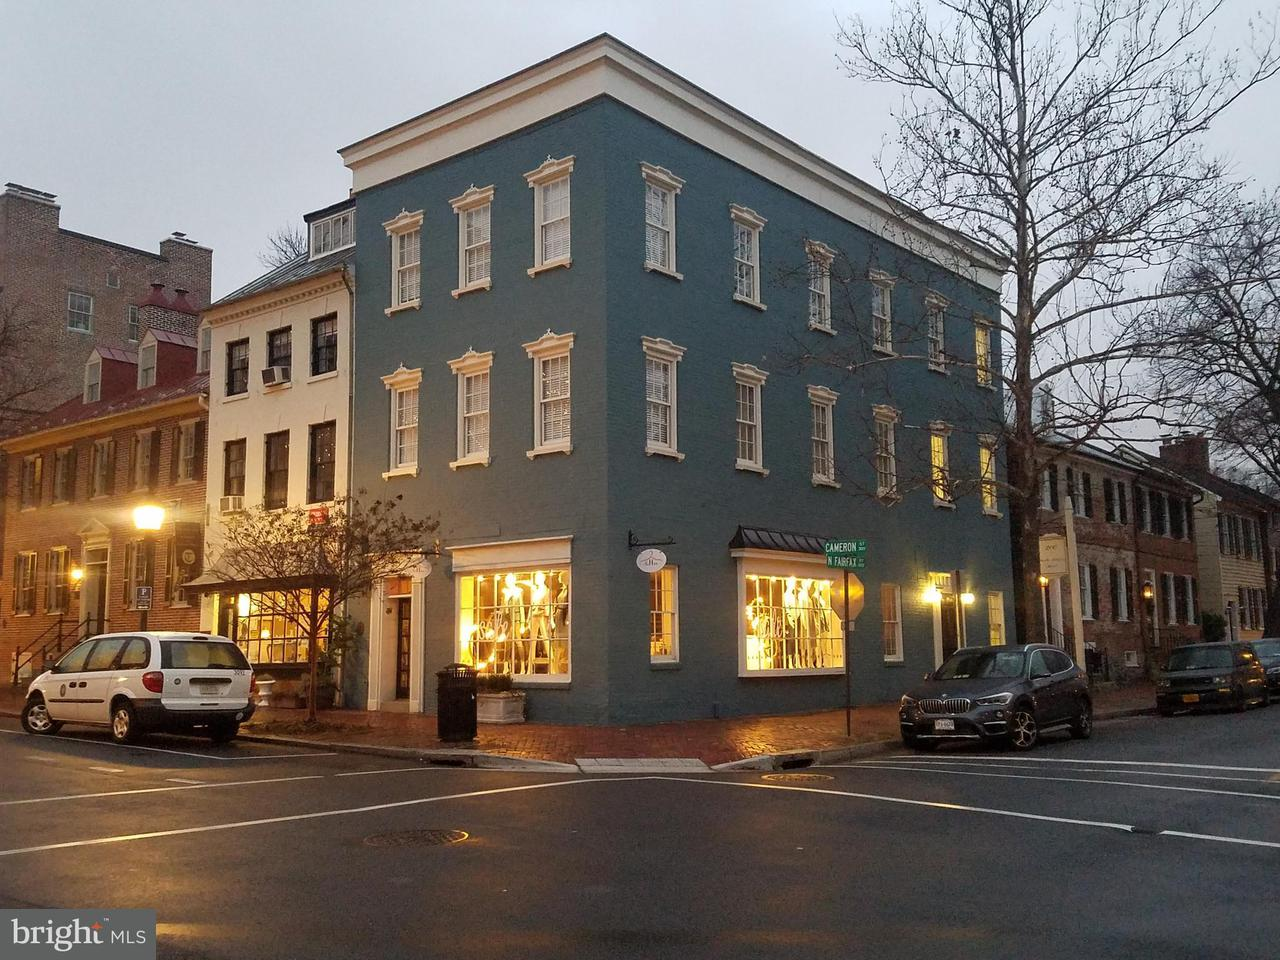 Commercial for Sale at 200 N. Fairfax Street 200 N. Fairfax Street Alexandria, Virginia 22314 United States